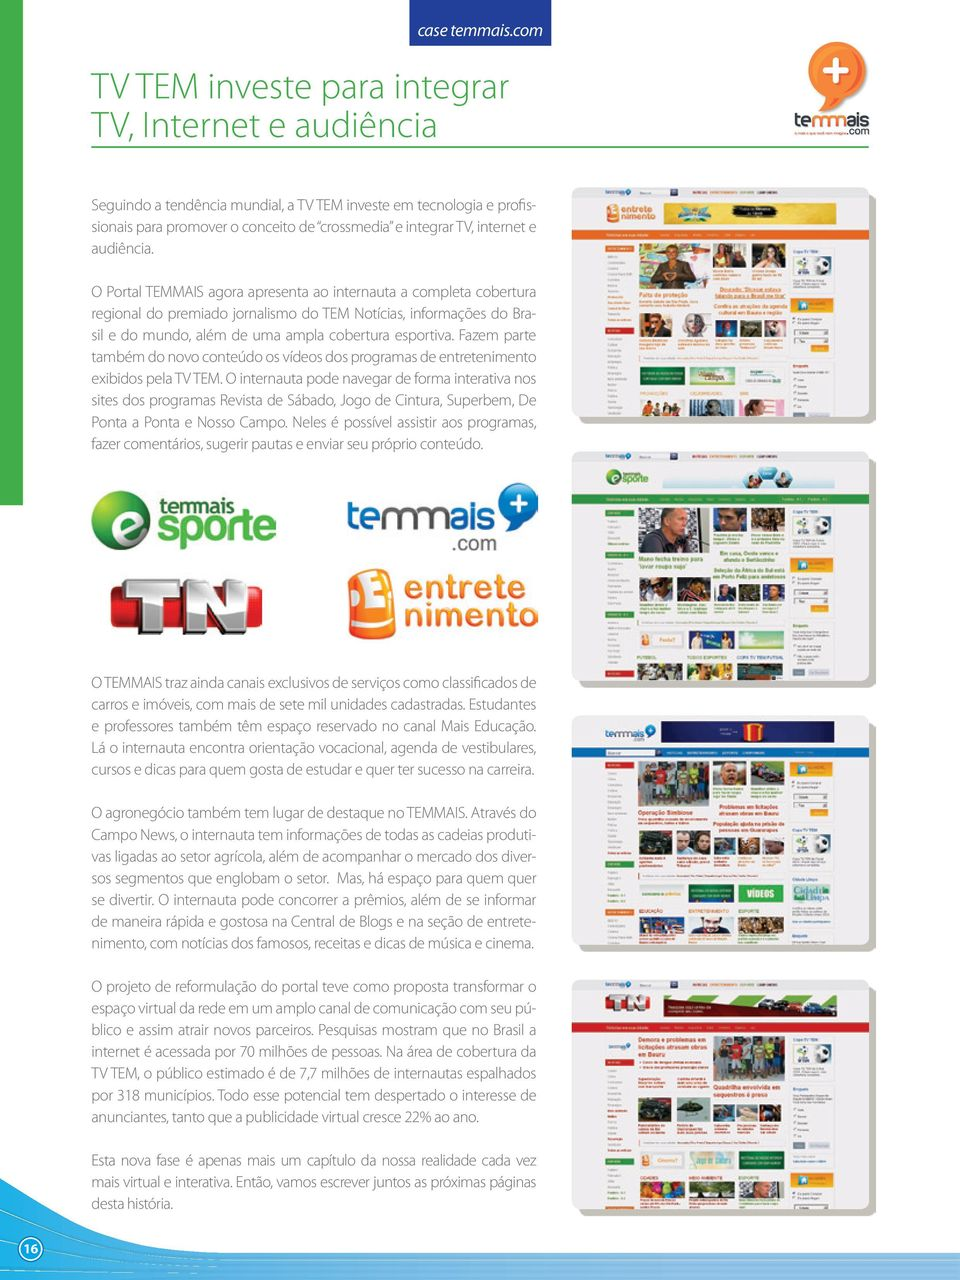 crossmedia e integrar TV, internet e audiência.